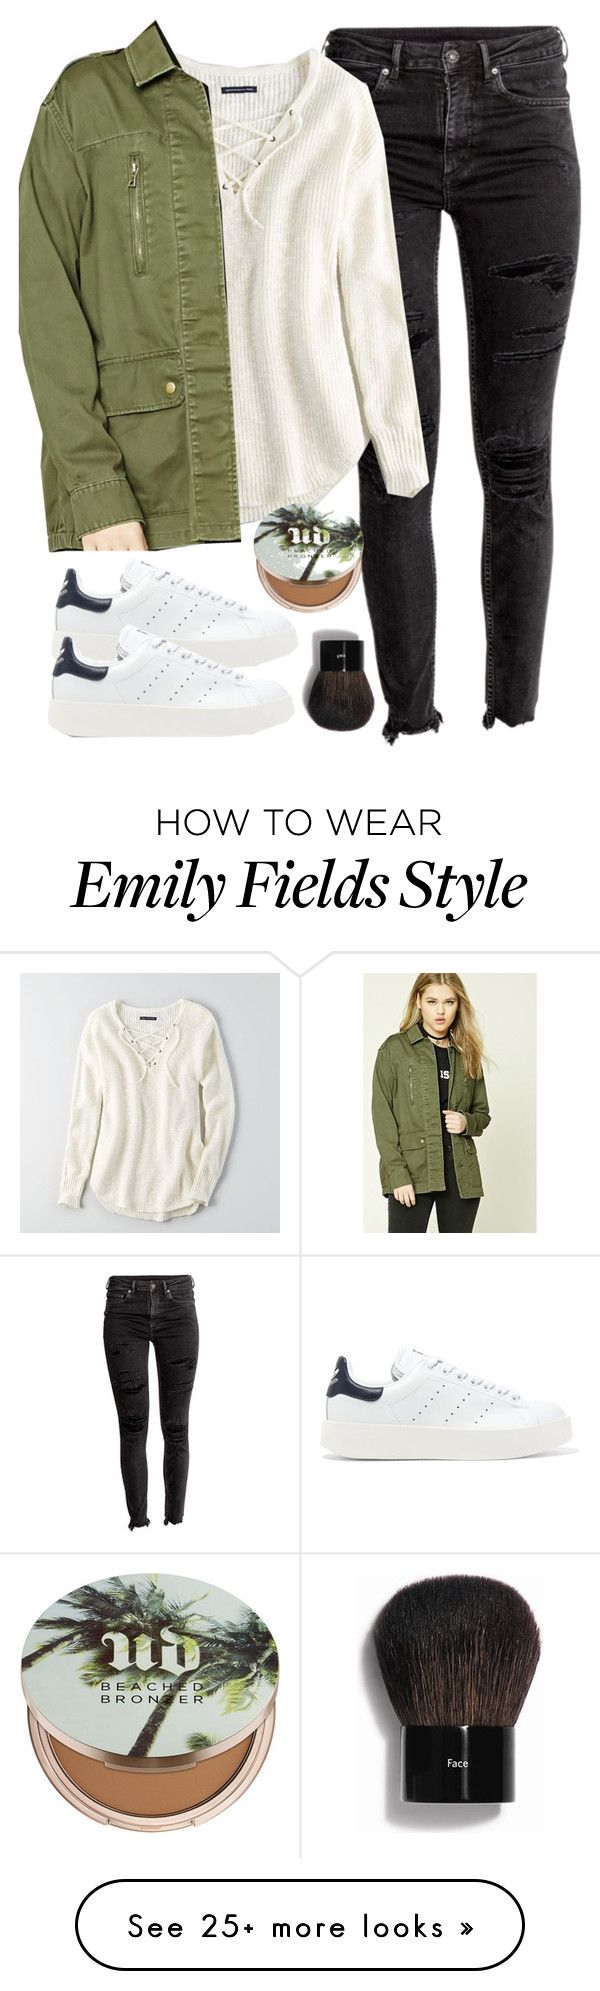 """Emily Fields inspired college outfit"" by liarsstyle on Polyvore featuring American Eagle Outfitters, Forever 21, adidas Originals, Urban Decay, Bobbi Brown Cosmetics, casual, outfit, travel, college and comfortable"